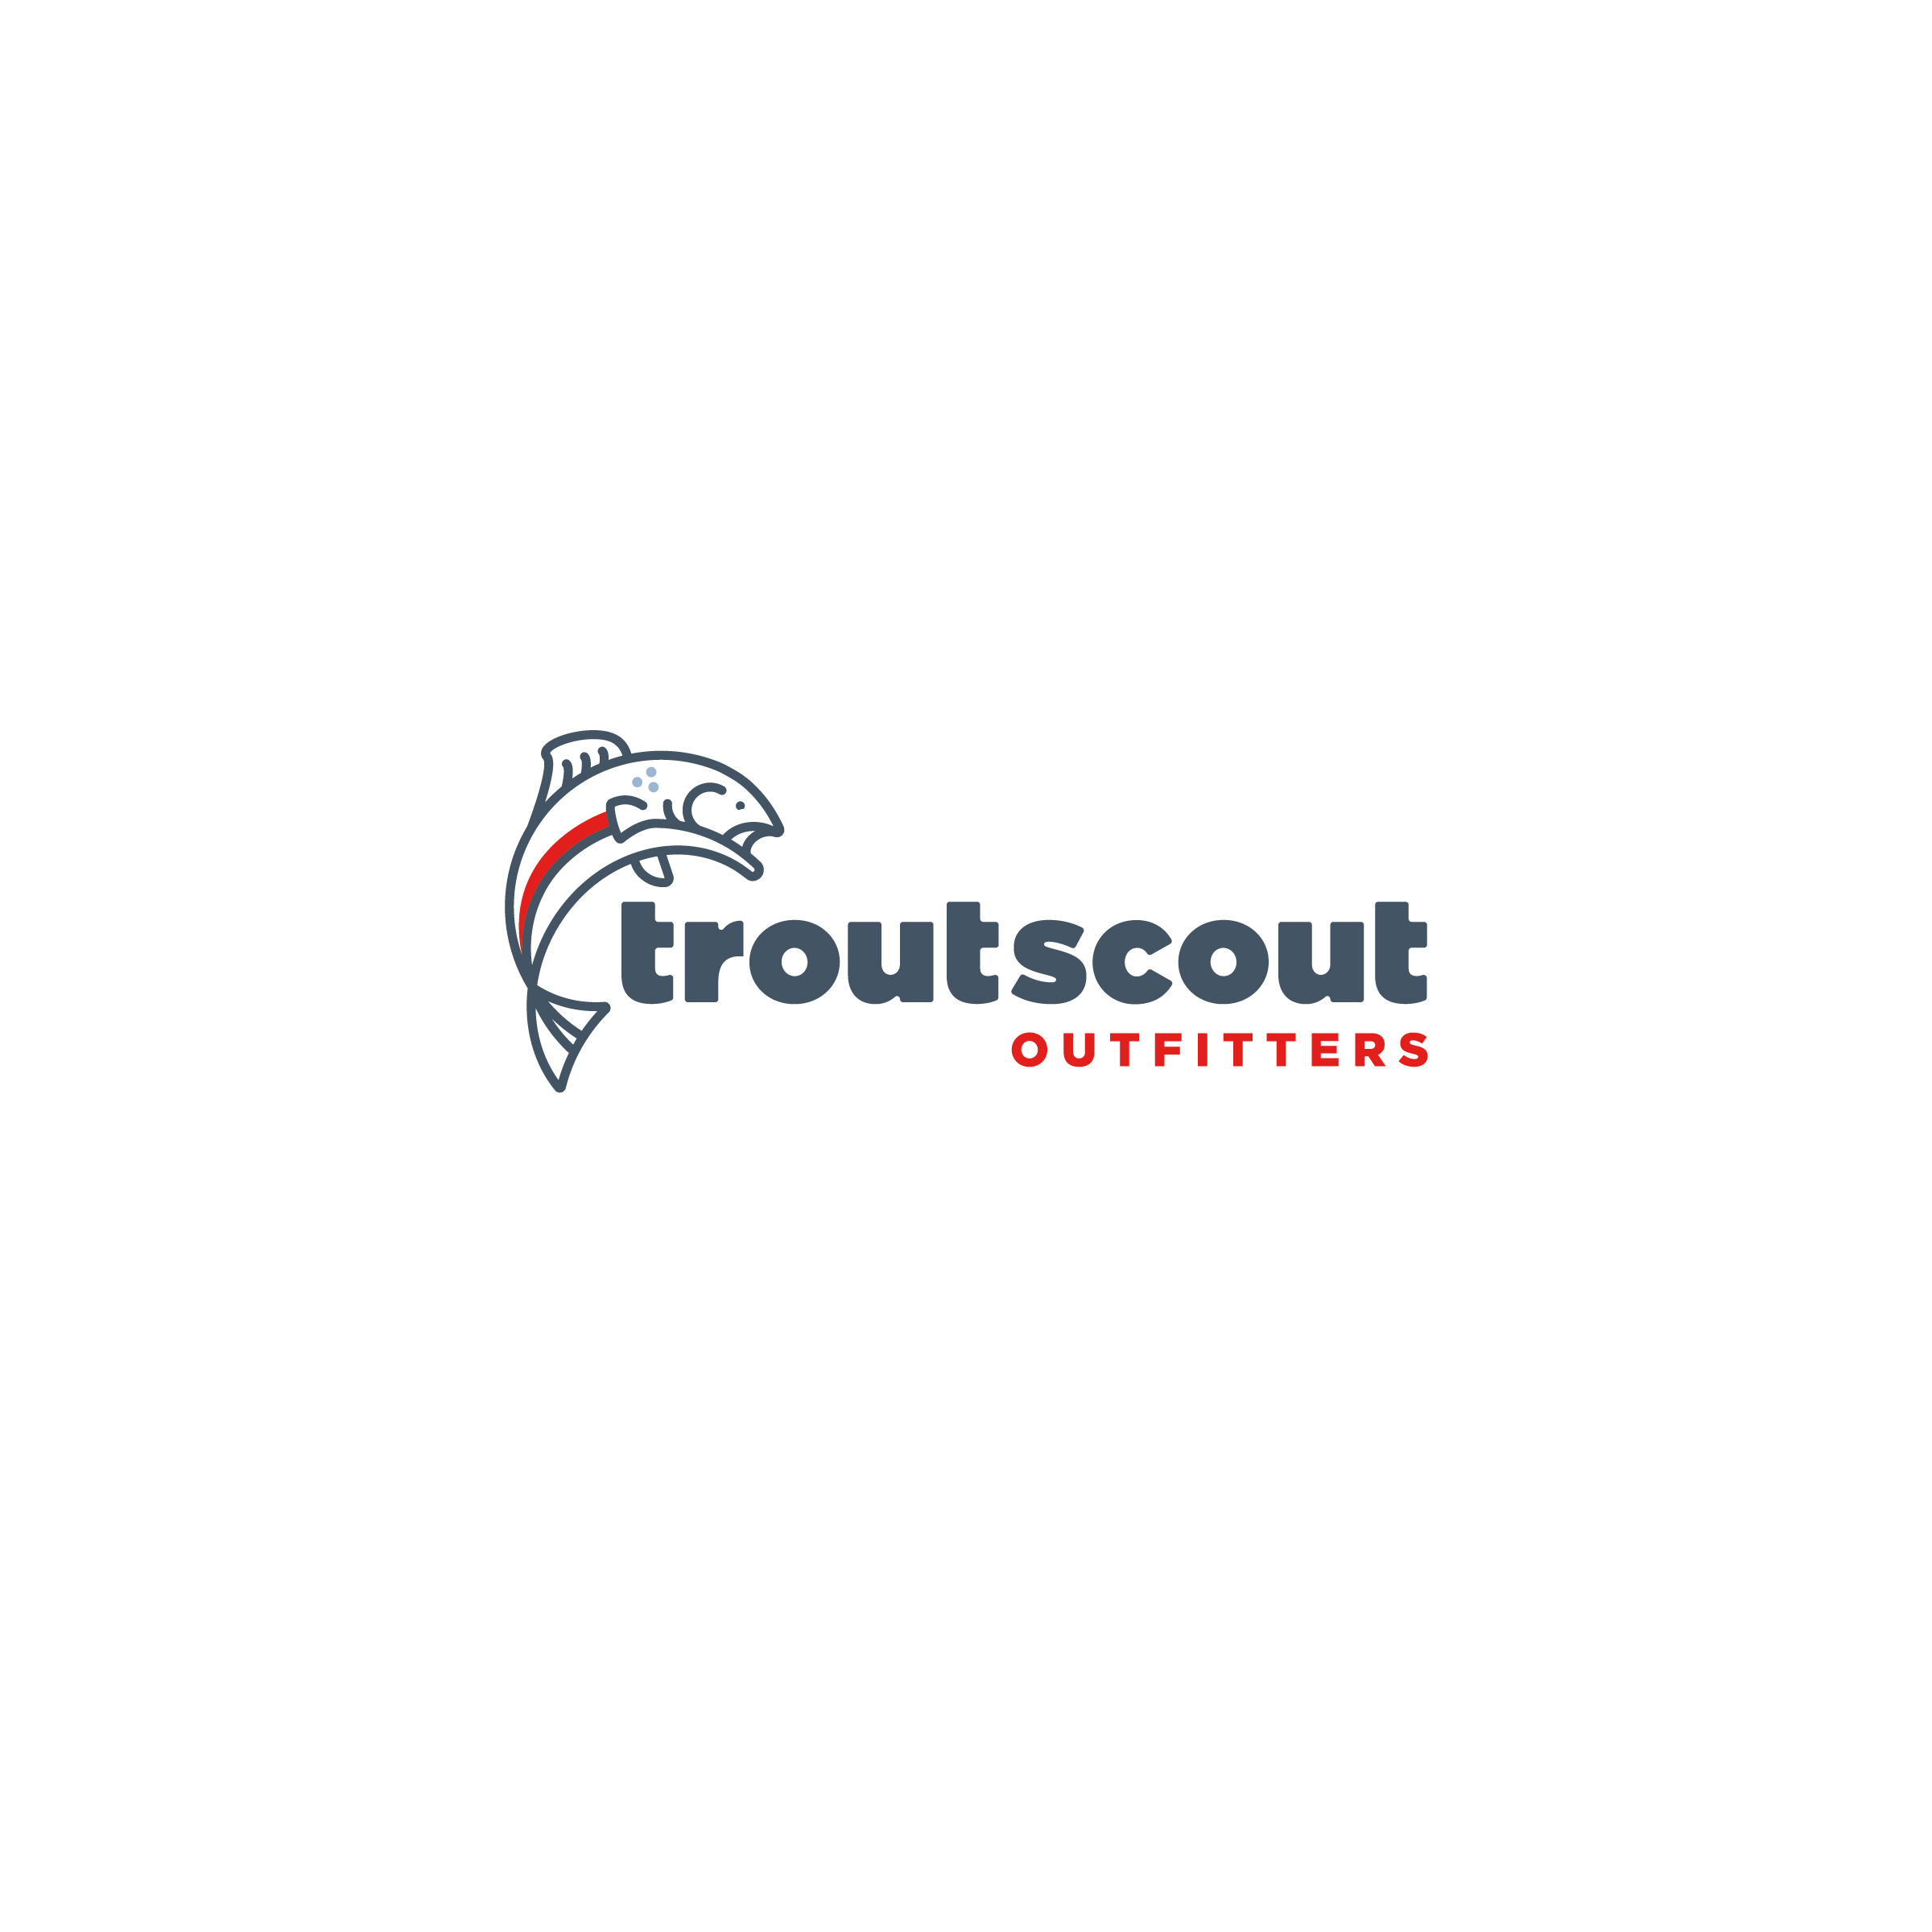 TroutScoutOutfitters_Bow_3Clr_Hrzt.jpg